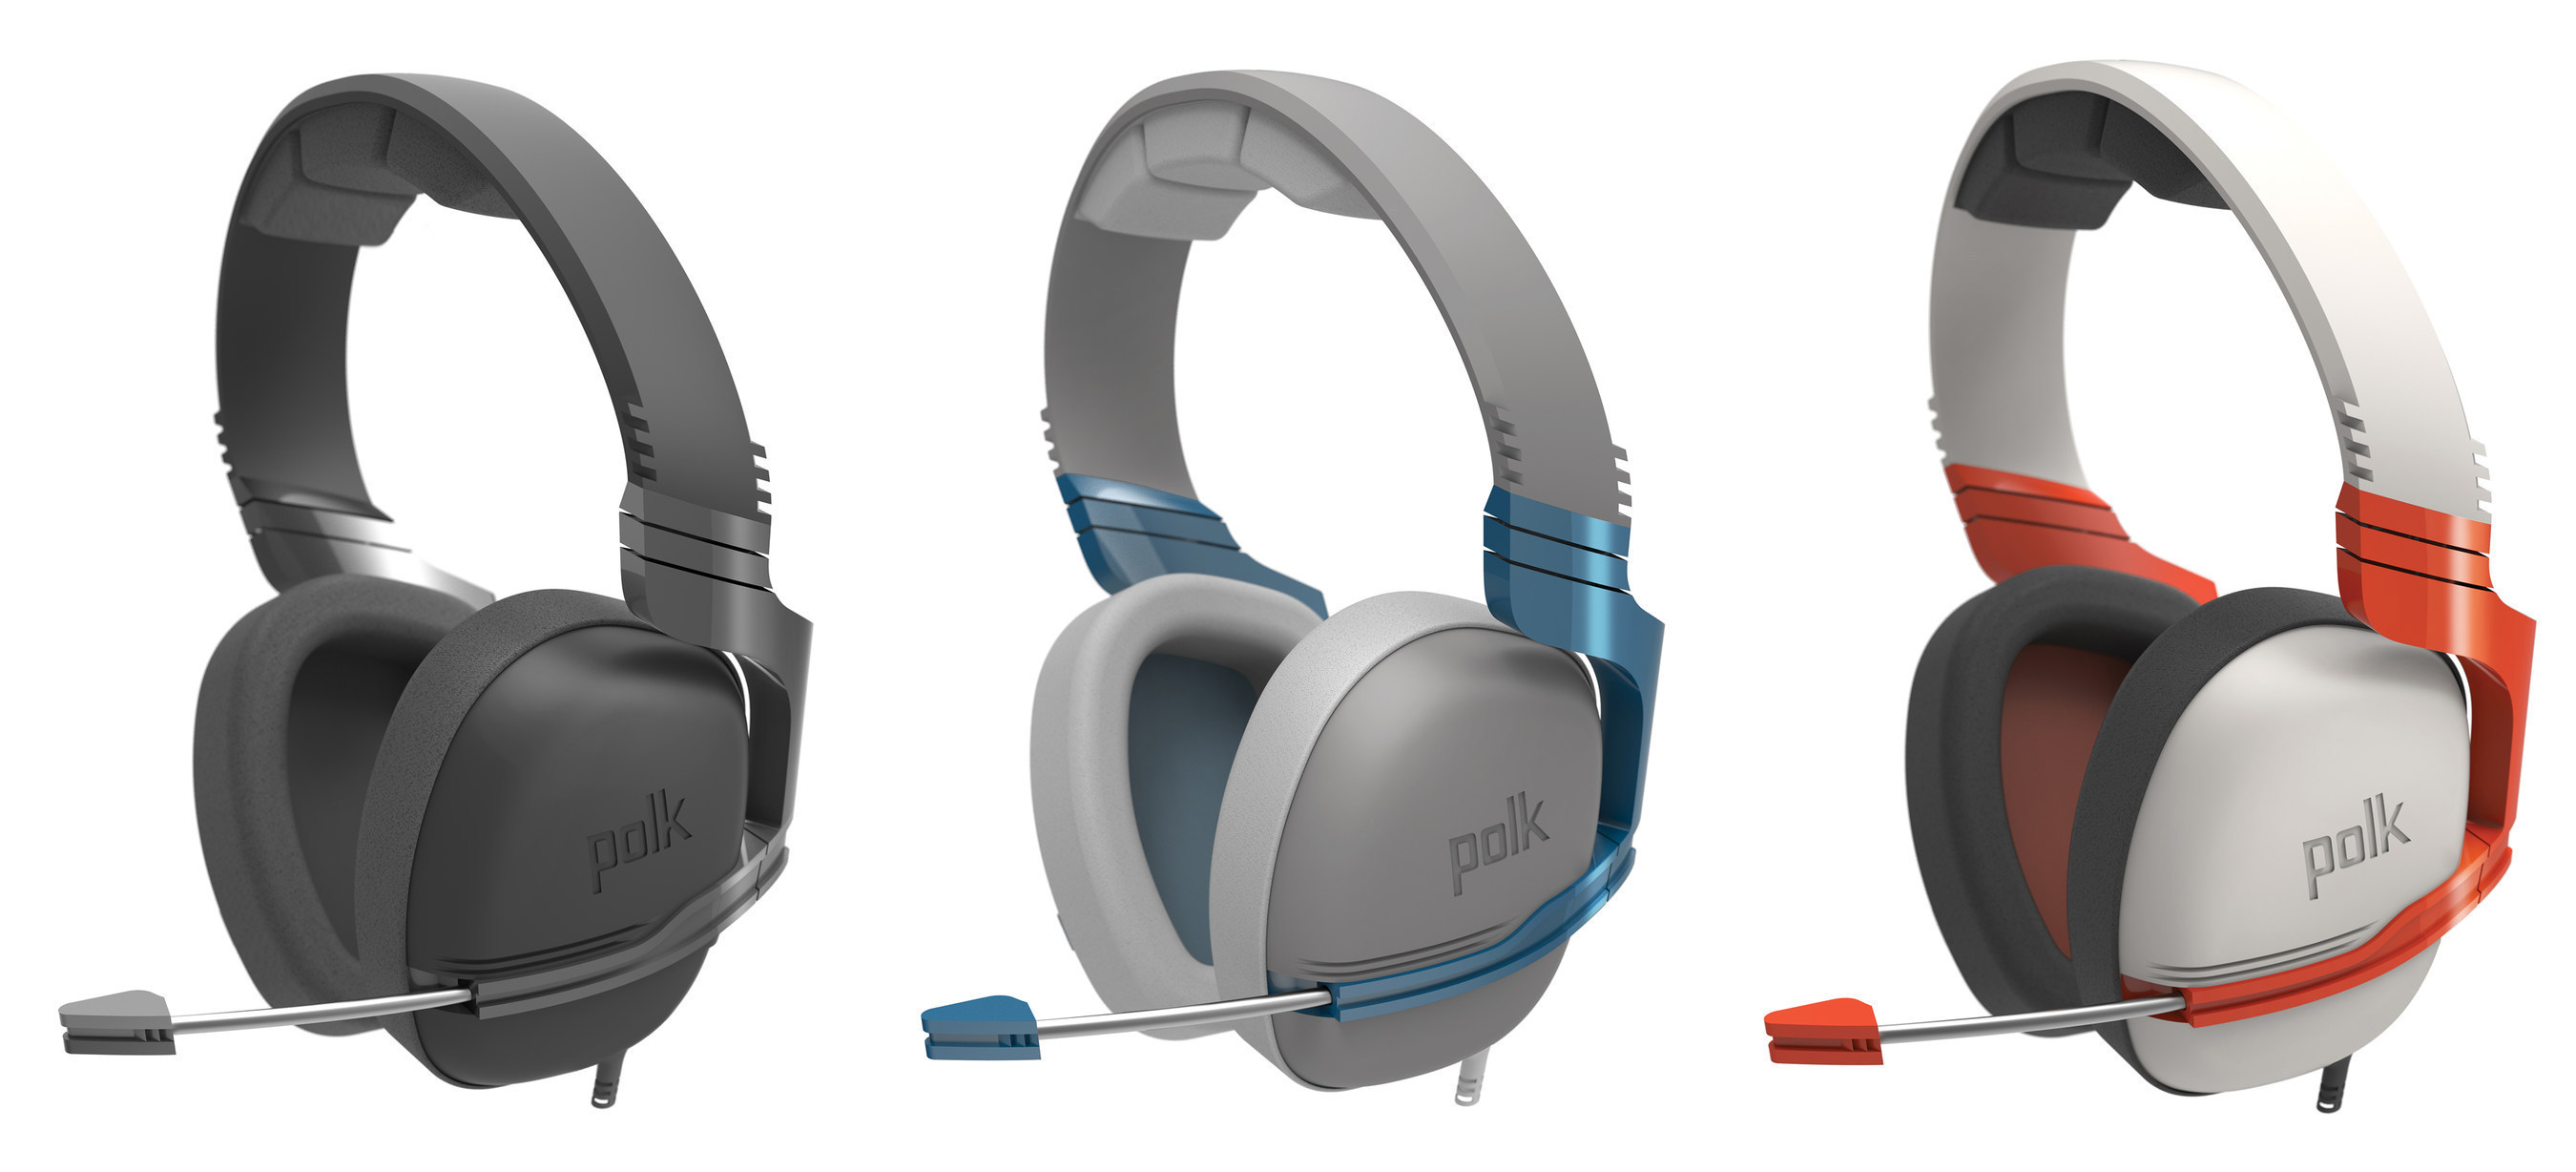 polk audio announces retail availability of striker zx the striker zx an affordable headphone amazing sound that was unveiled at this year s